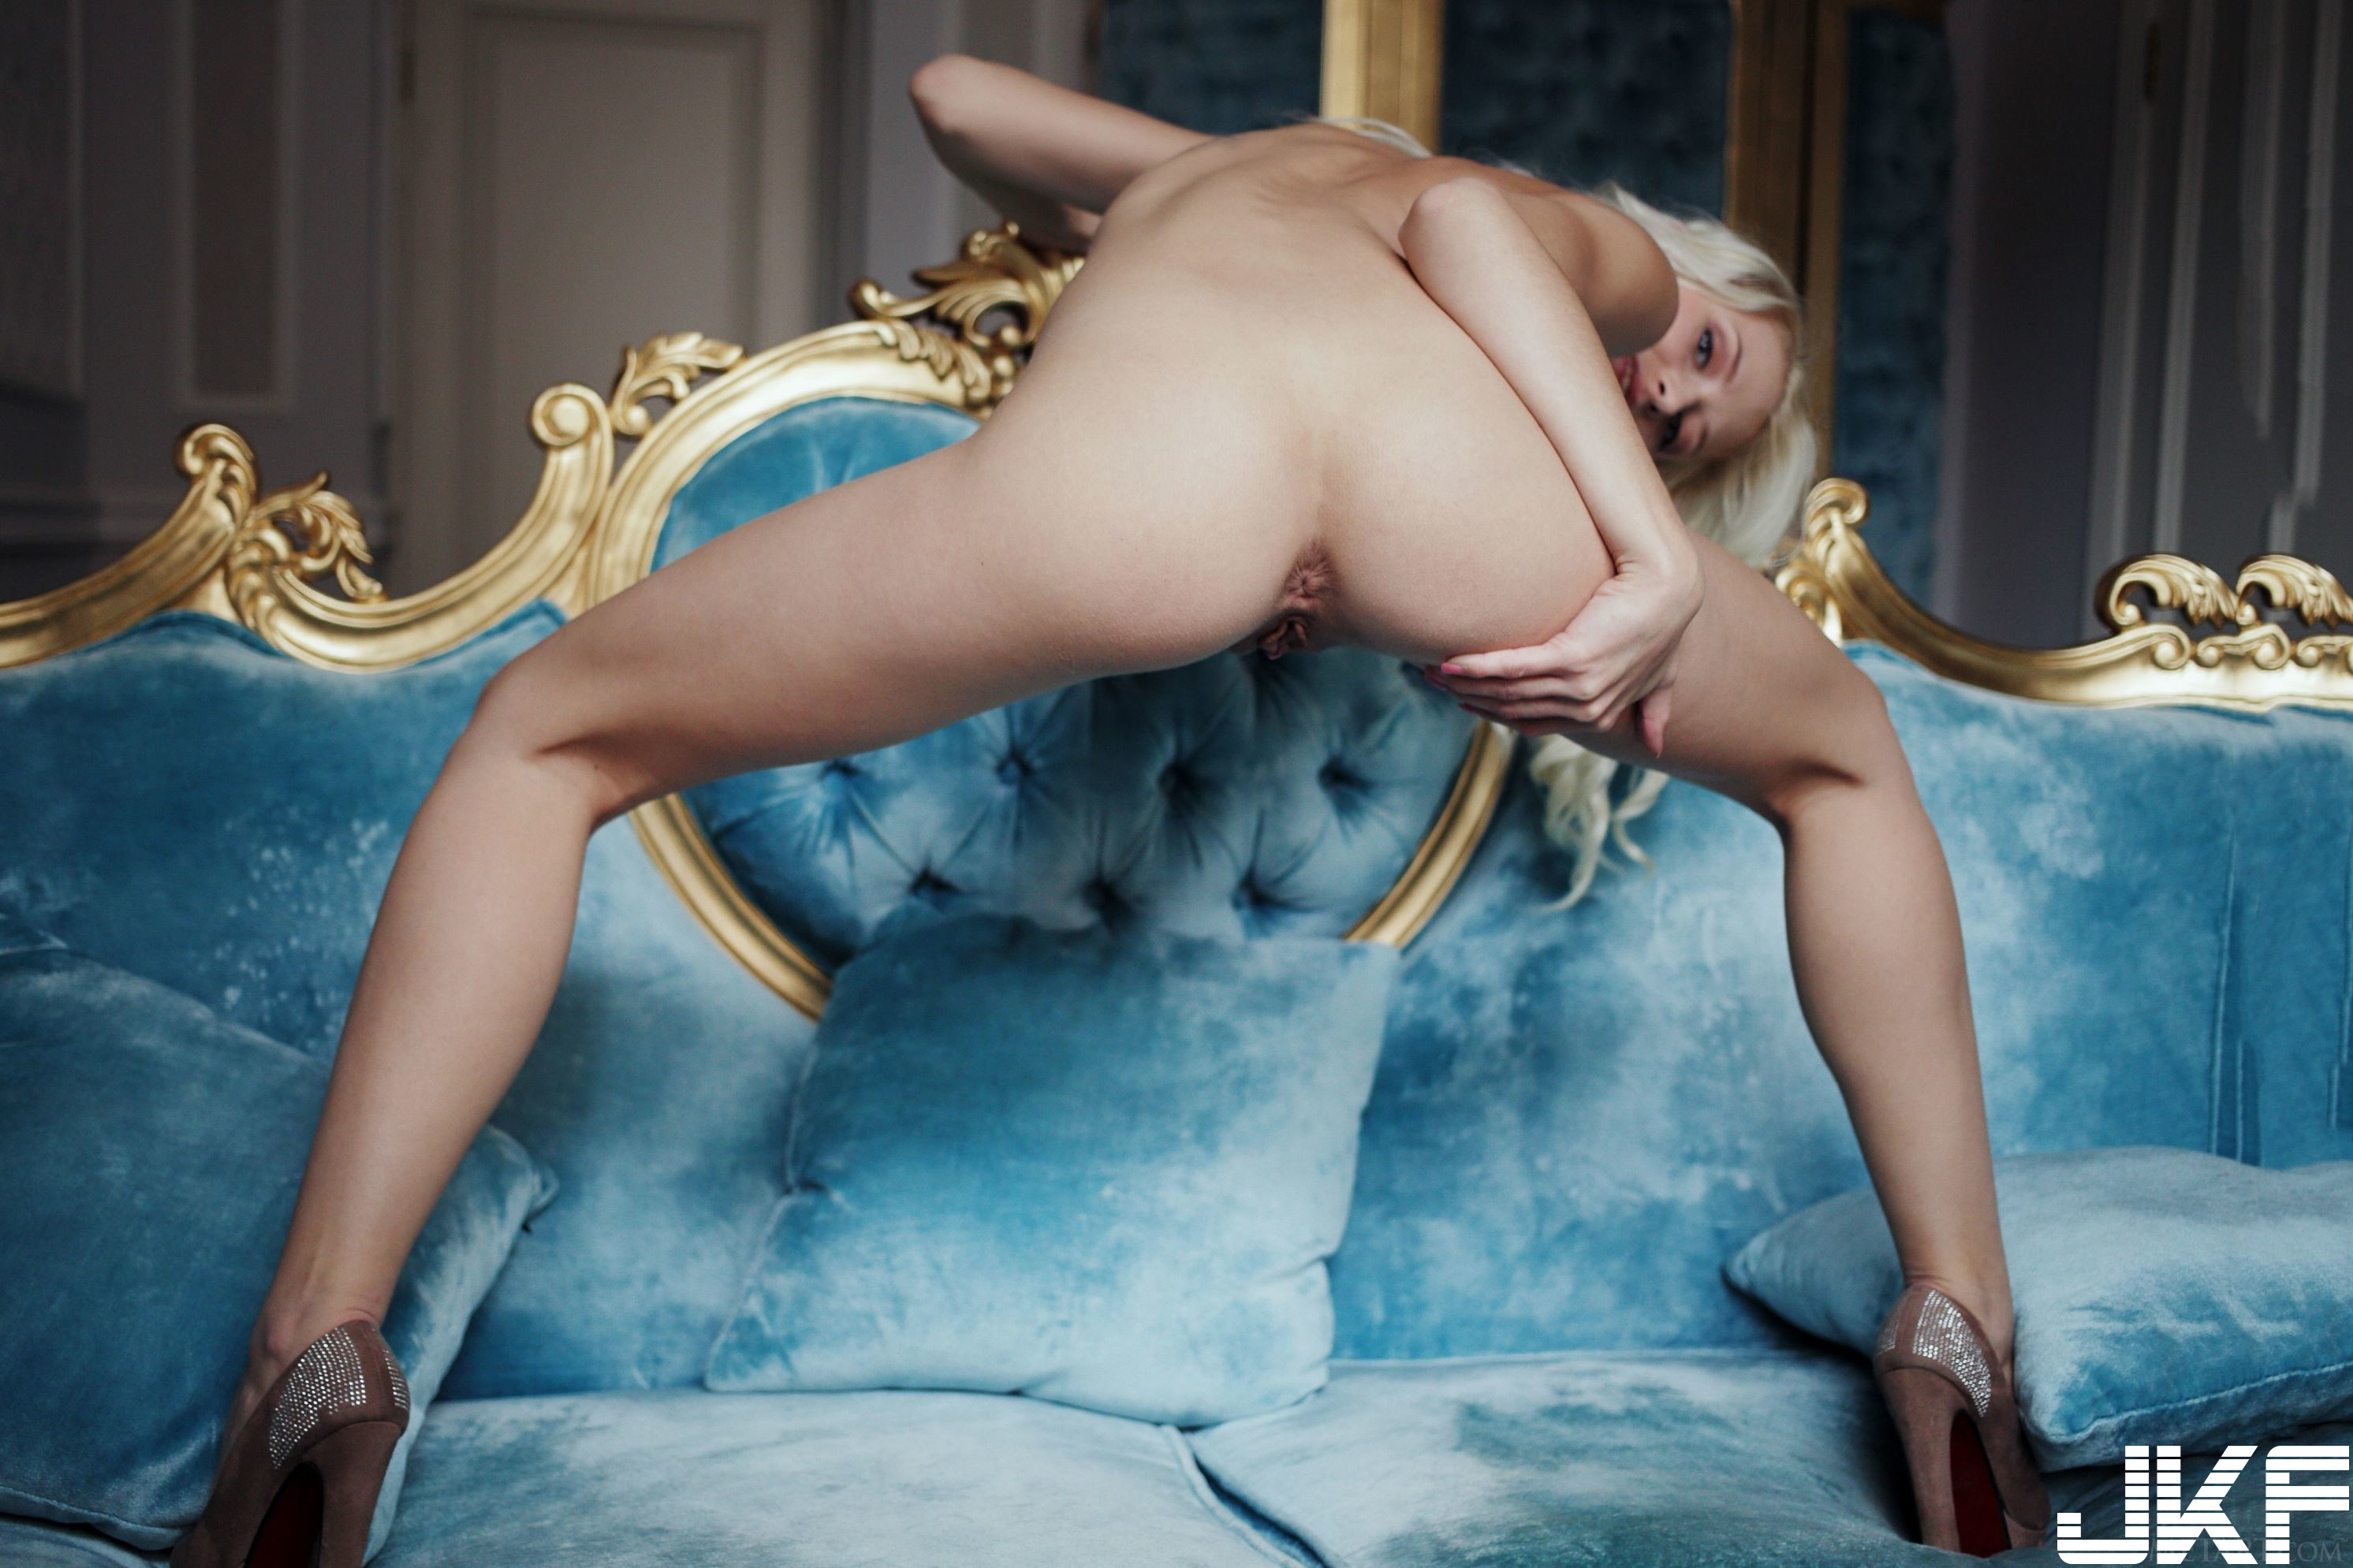 Shaved-Blonde-Adelia-B-with-Thick-Nipples-21.jpg